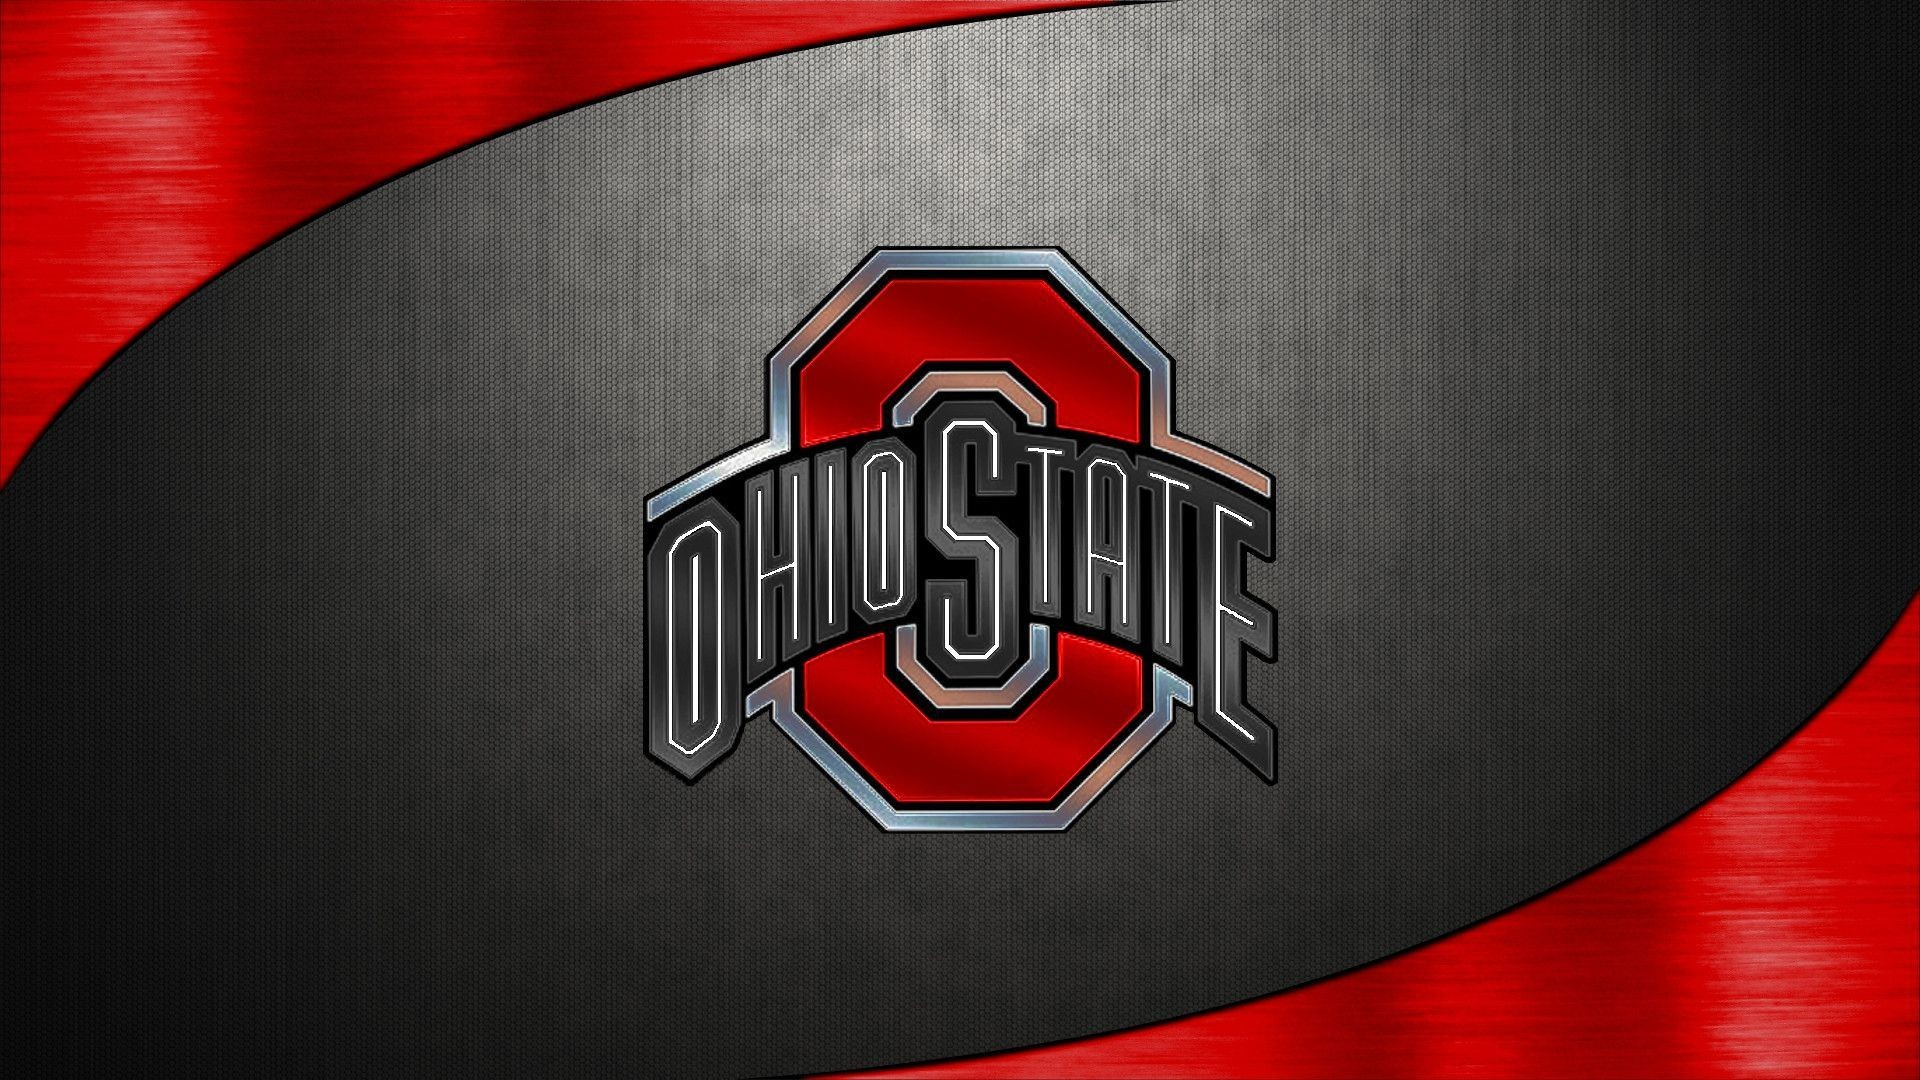 1920x1080 Image Name: Ohio State Football OSU Desktop Wallpaper Ohio State Backgrounds  Wallpapers)